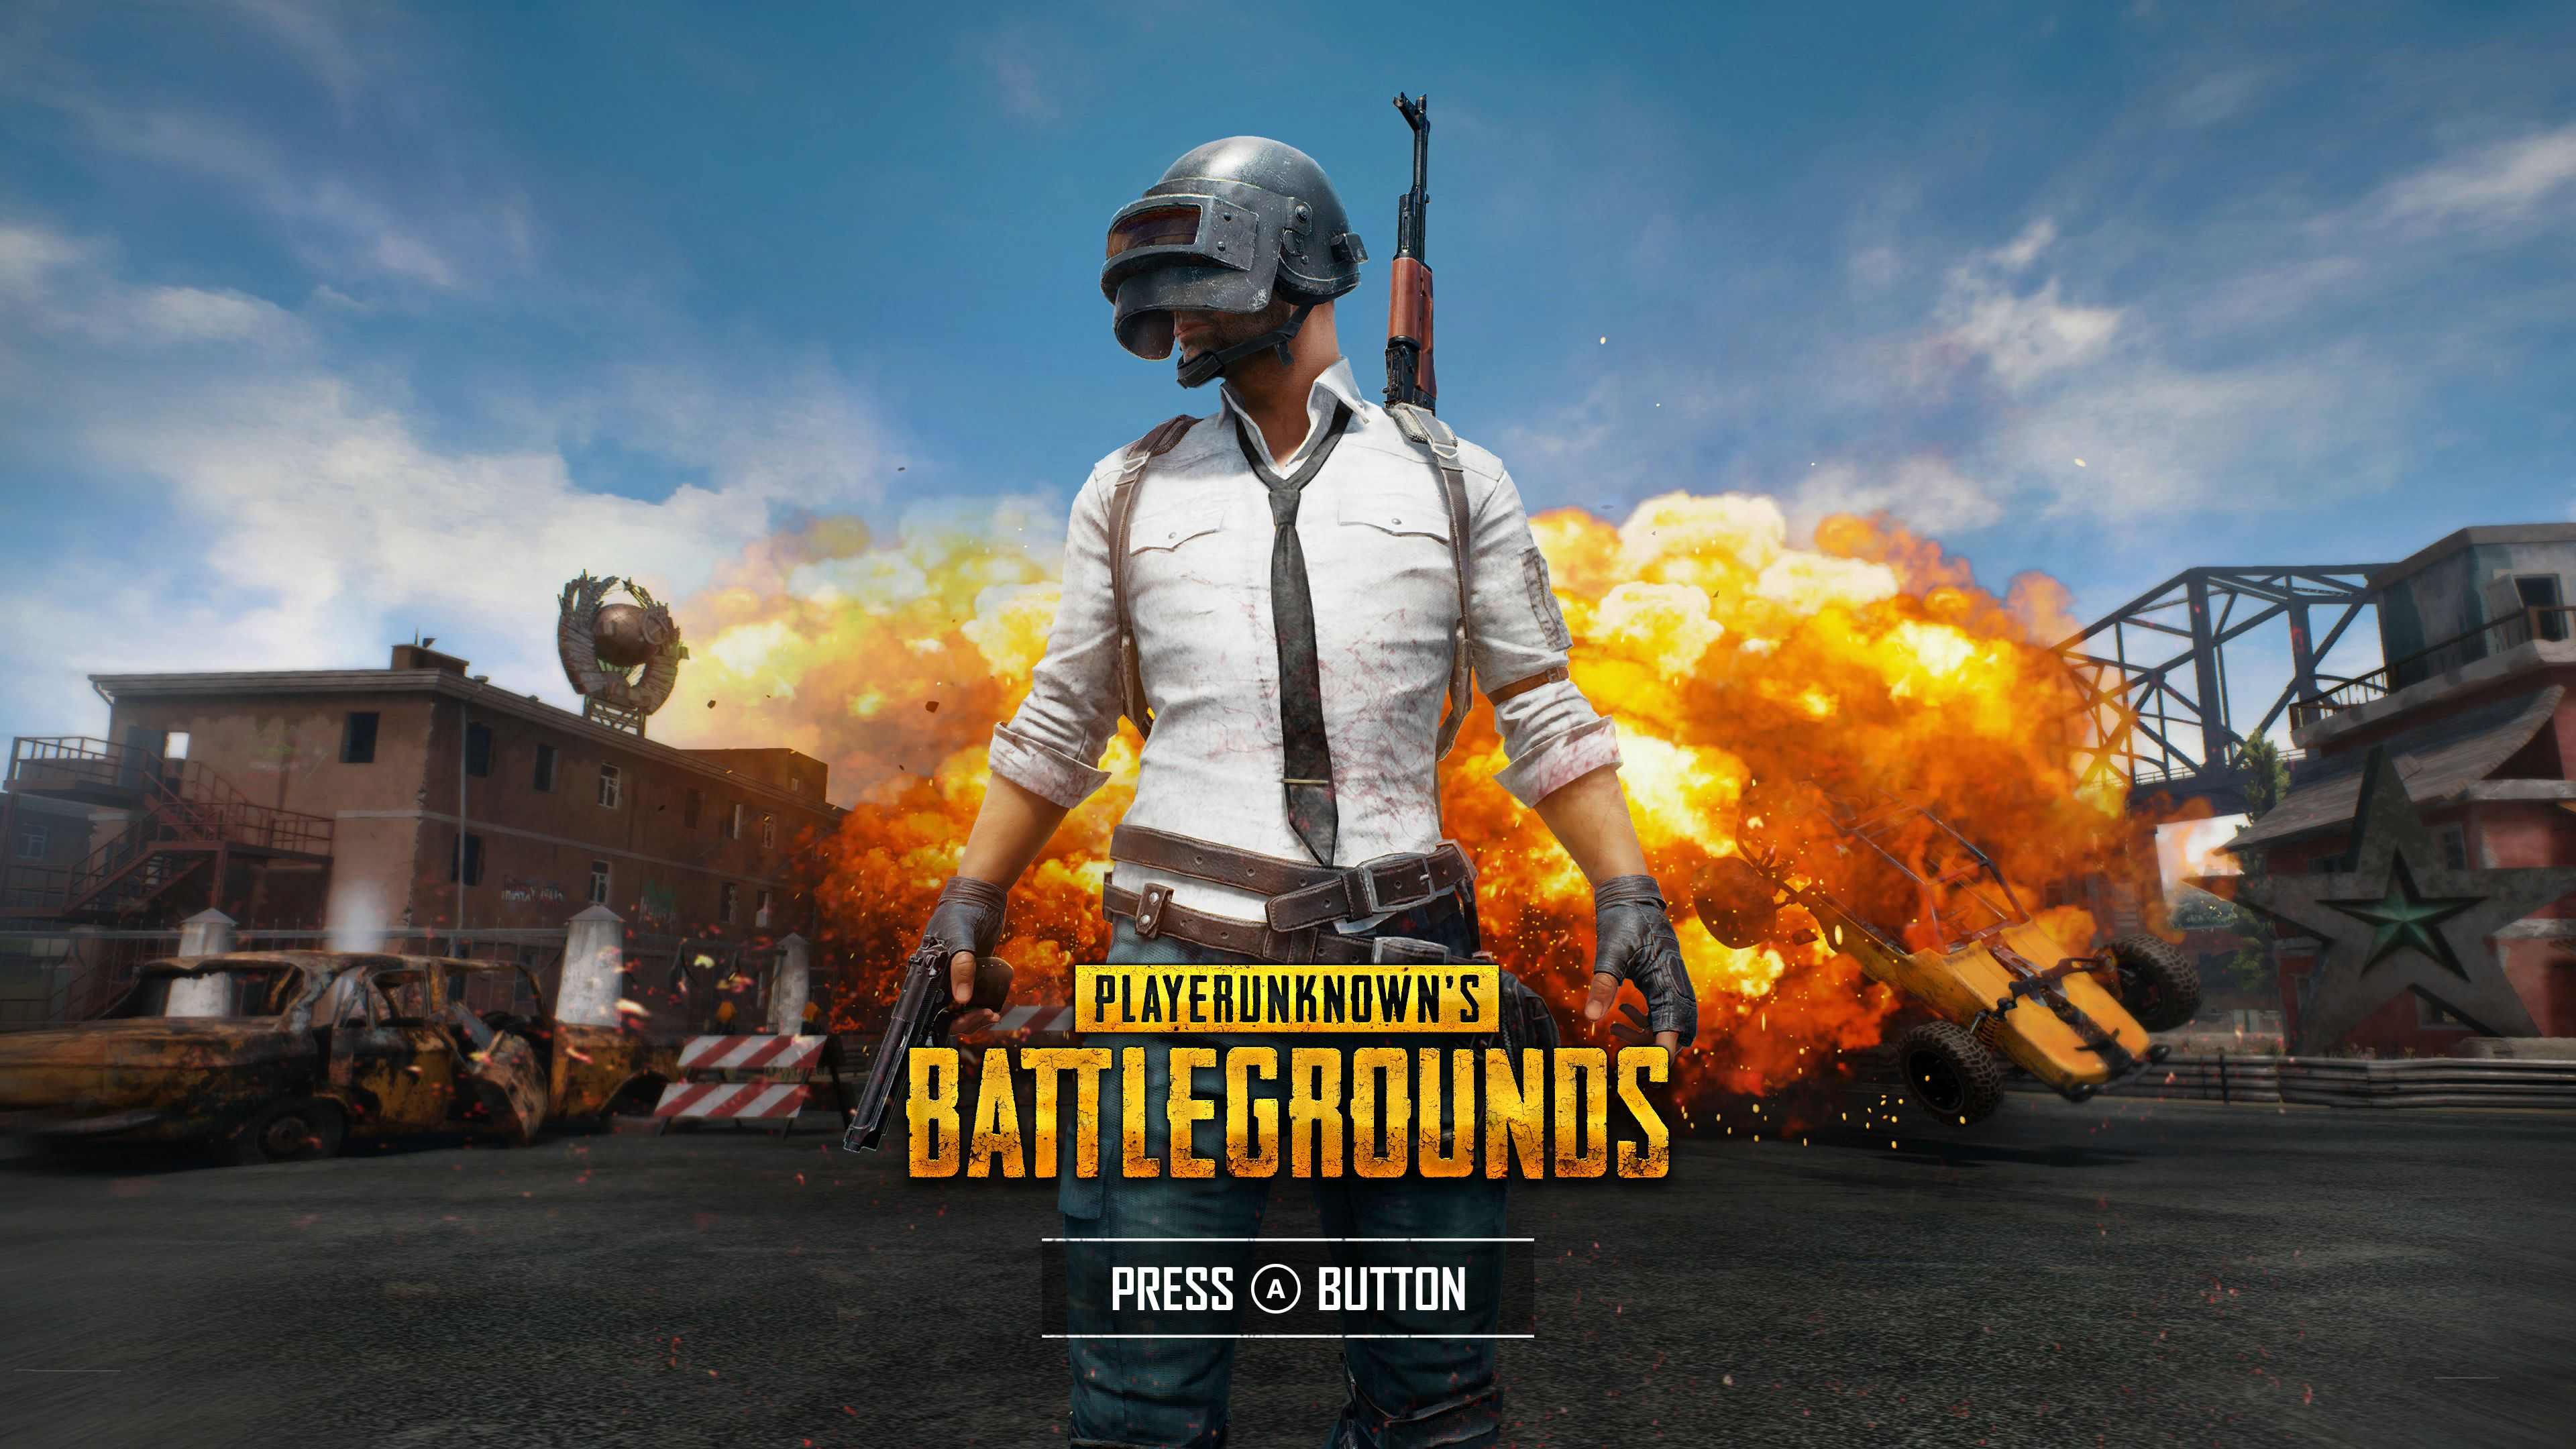 Wallpaper Playerunknown S Battlegrounds 2017 4k Games: Playerunknown's Battlegrounds